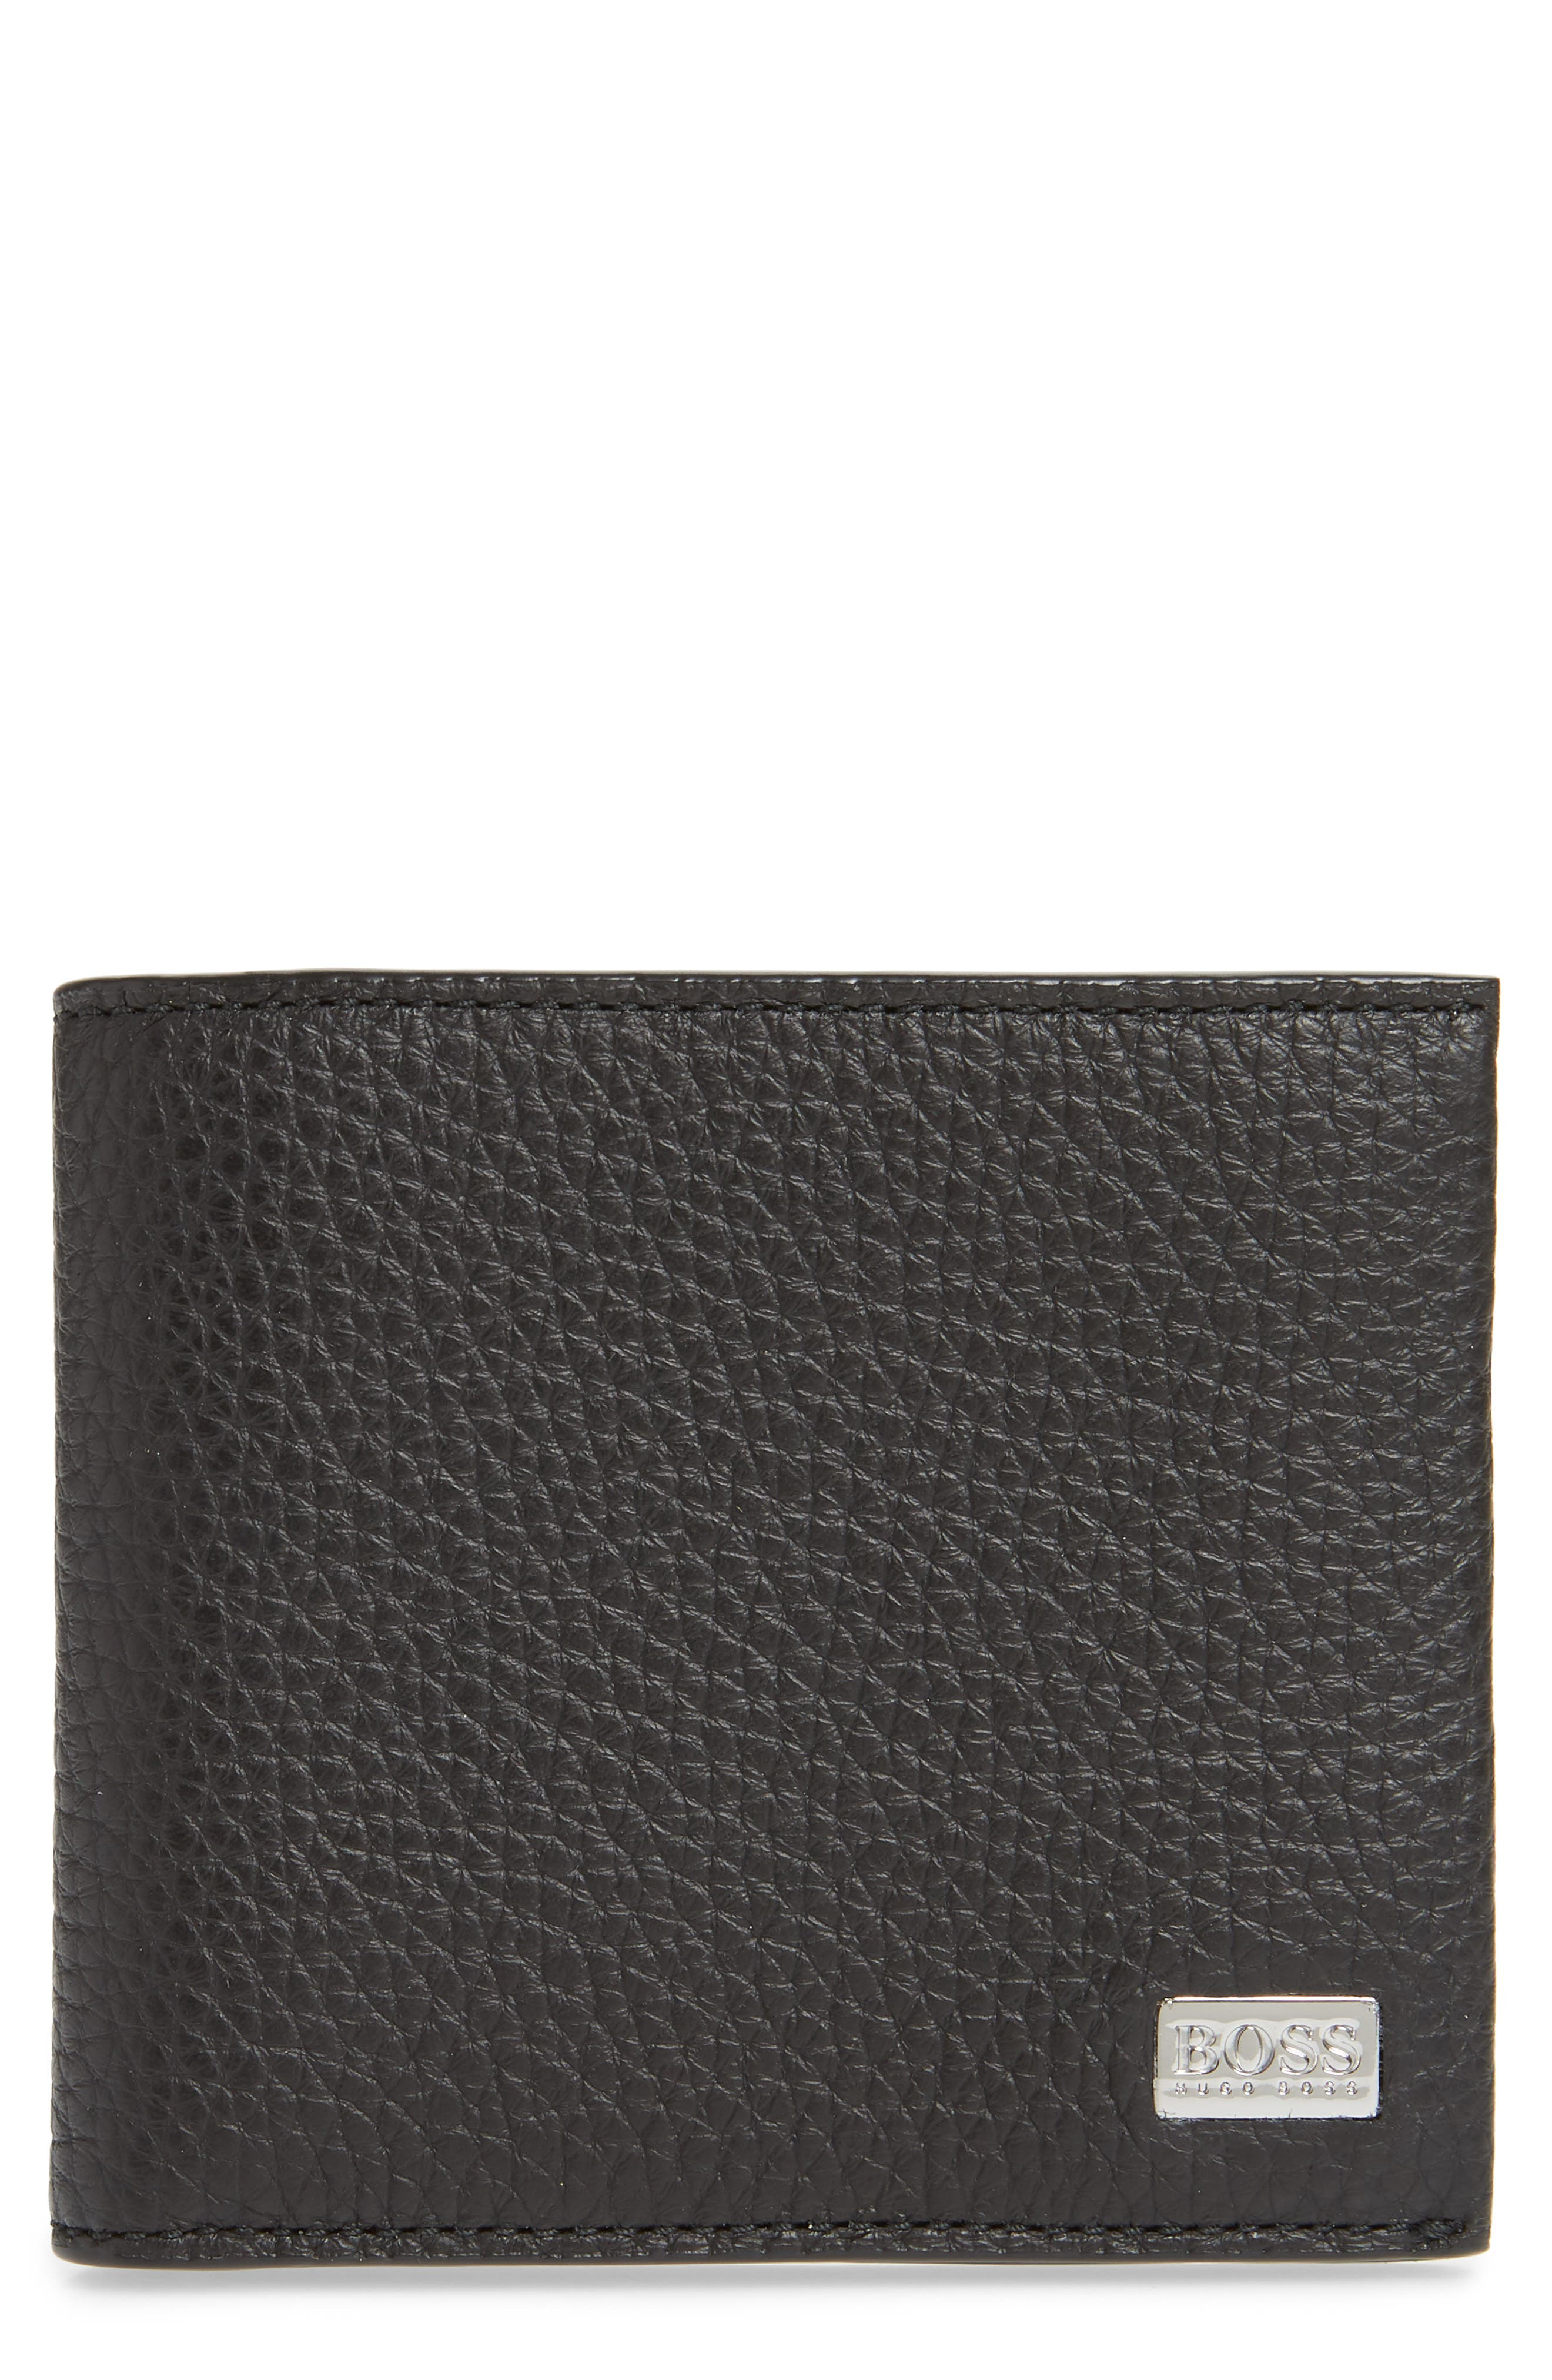 Crosstown 8-Card Leather Wallet,                             Main thumbnail 1, color,                             BLACK